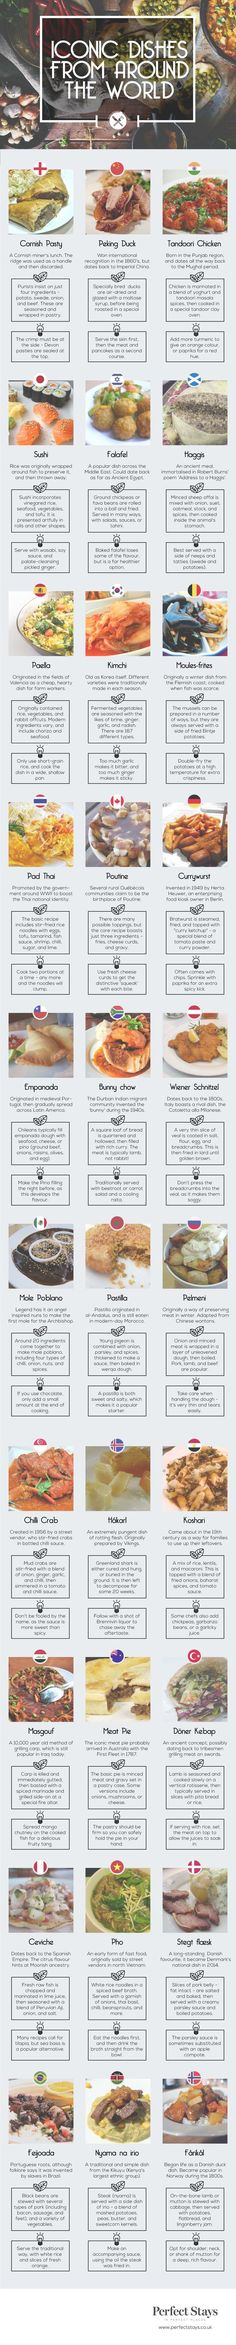 A Foodies' Travel Guide! | Iconic Dishes From Around the World